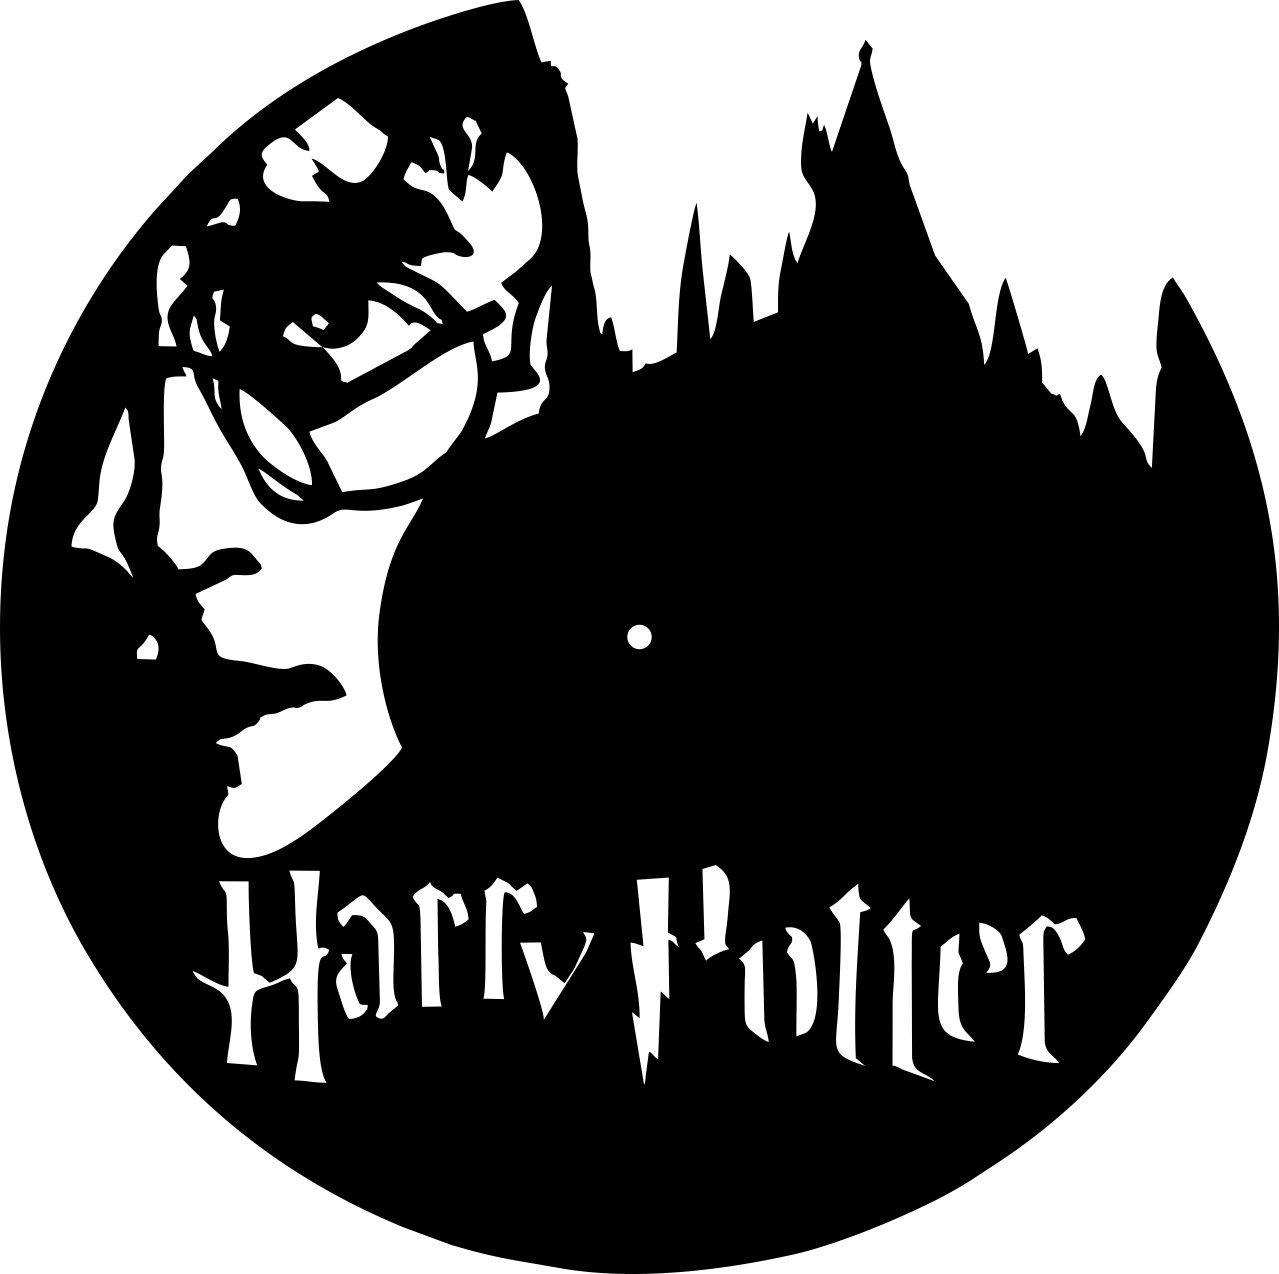 HARRY_POTTER_01